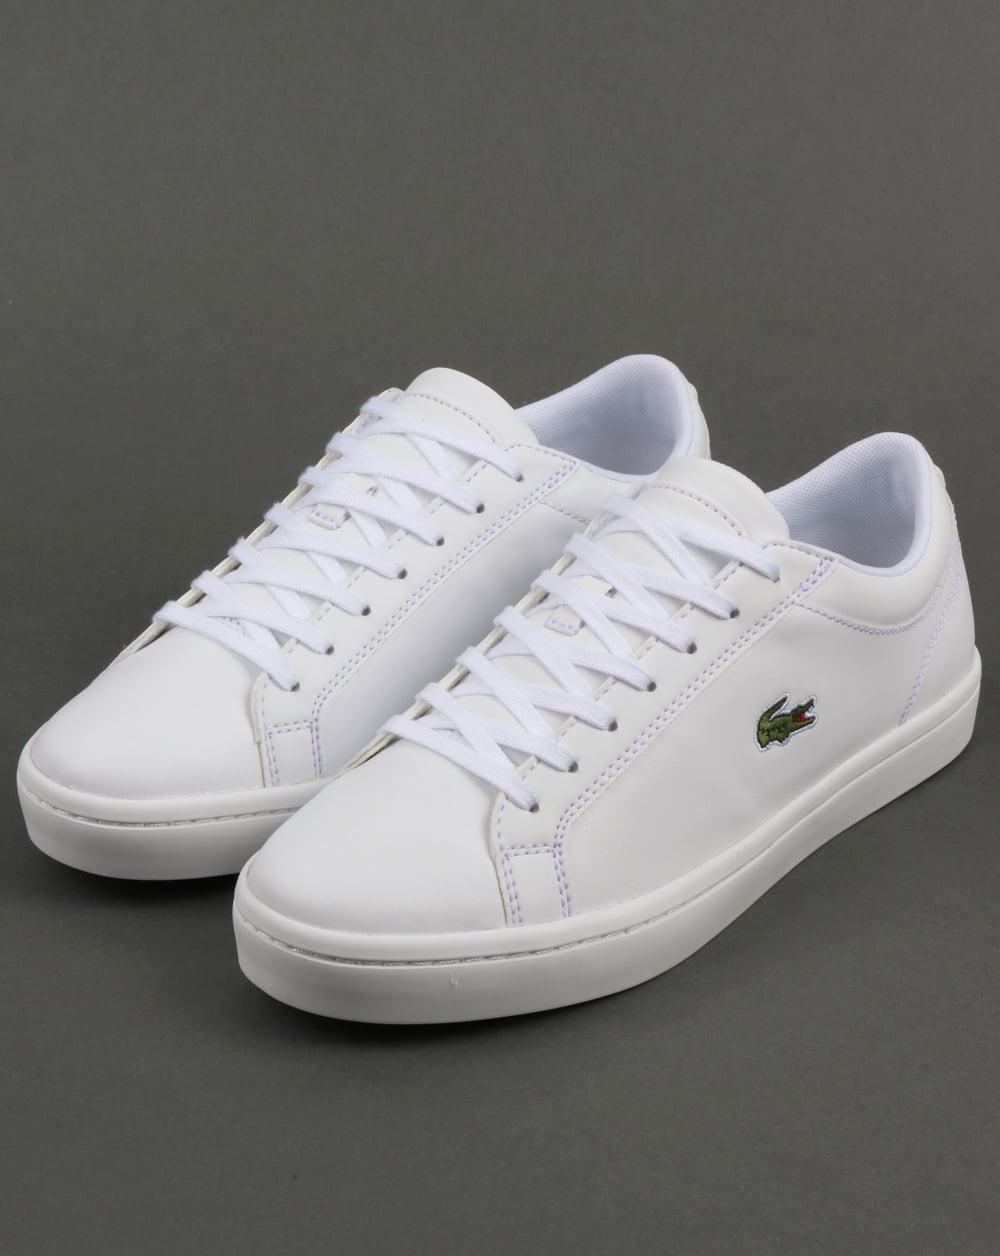 bedccf8622bbae Lacoste Footwear Straightset Trainers White